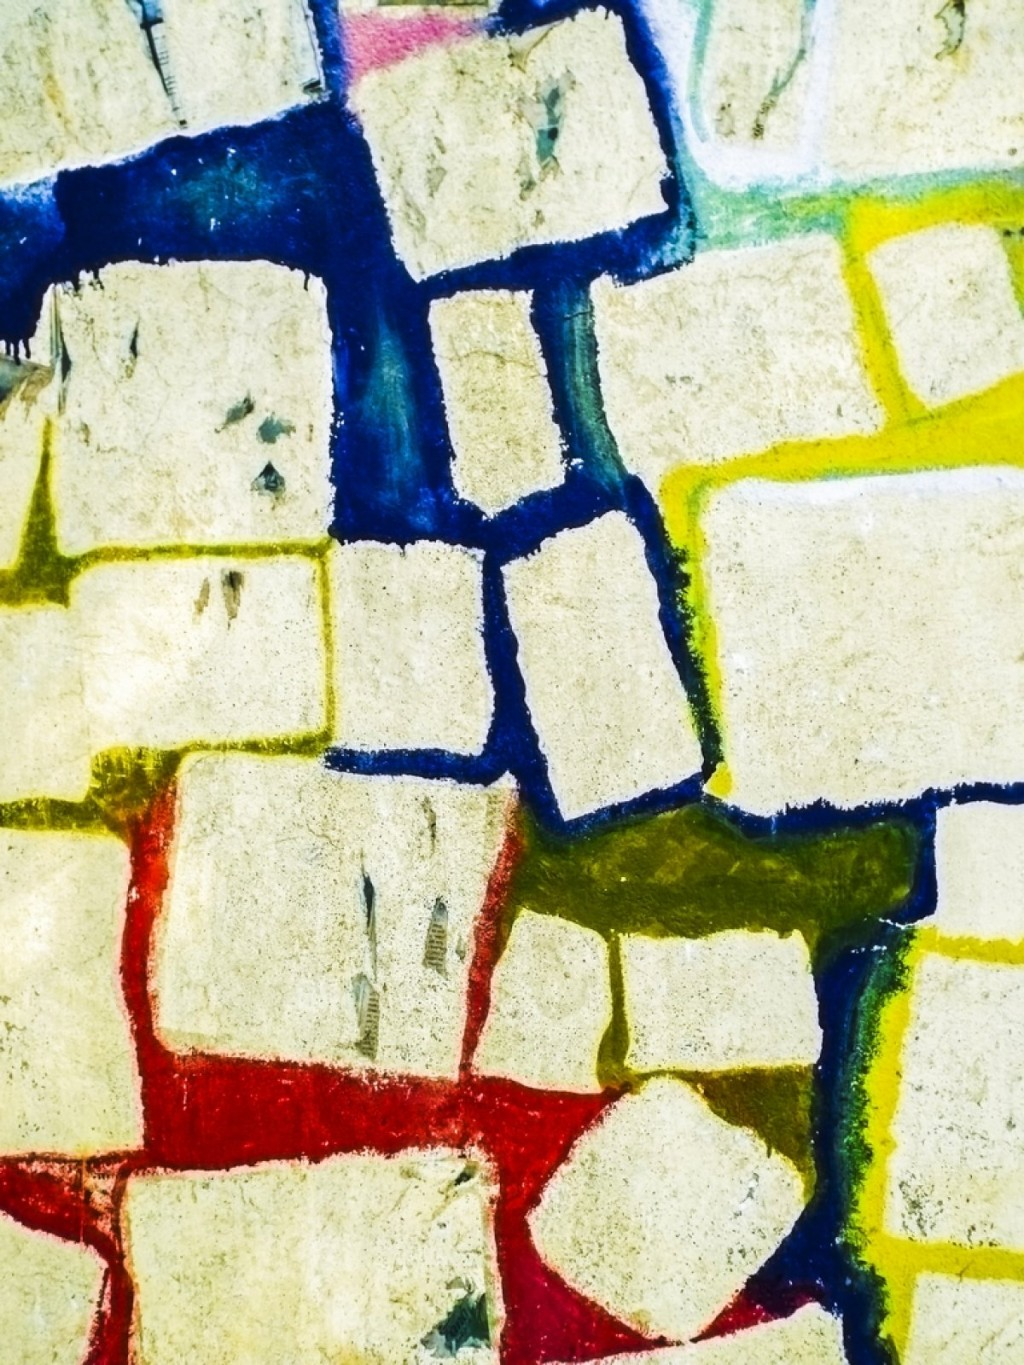 Colorful Abstracts / © Tanmay Chandra Nath